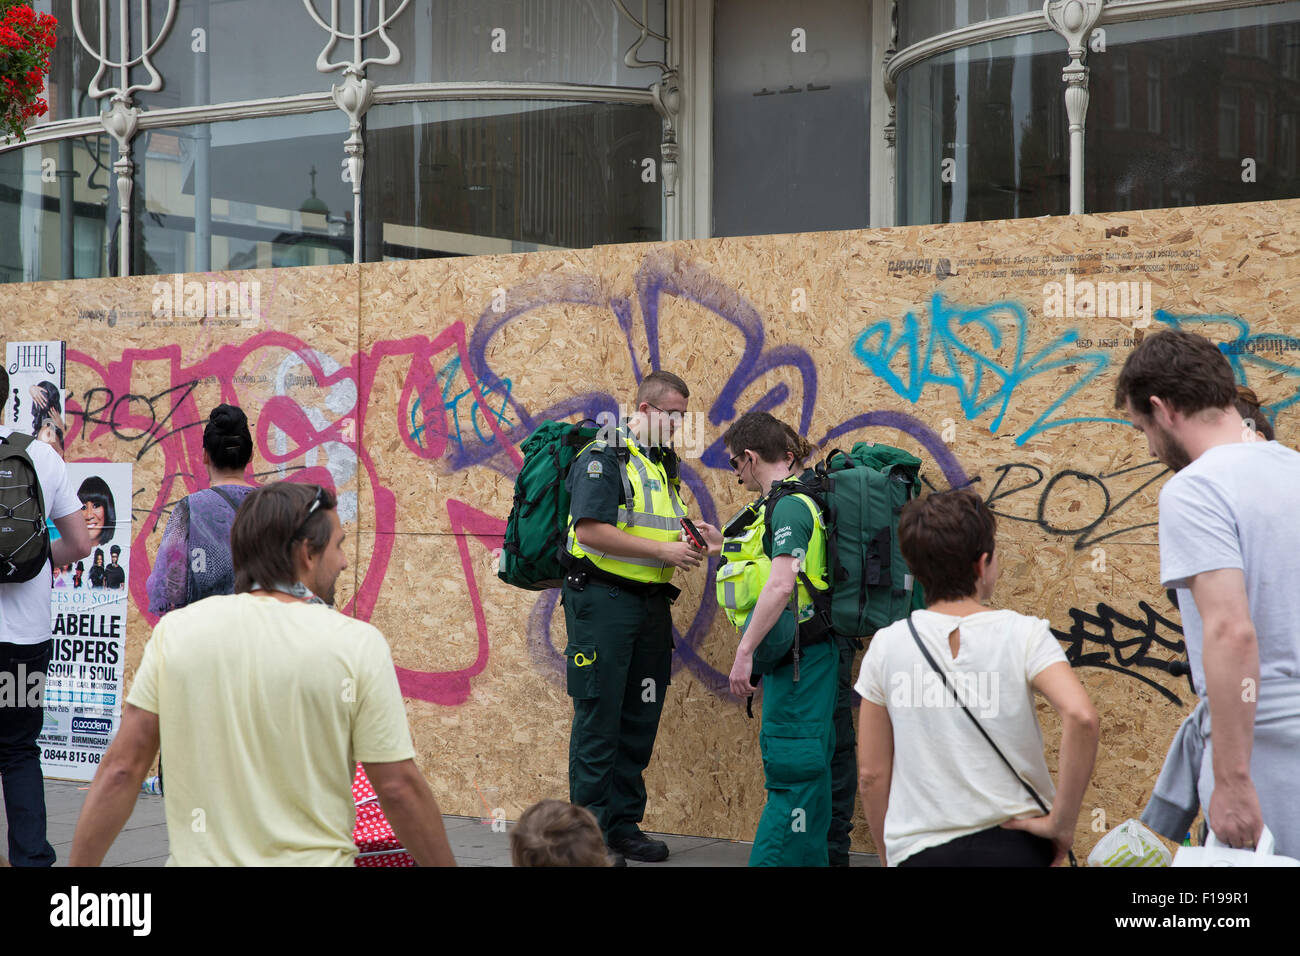 Notting Hill, UK. 30th August, 2015. London Ambulanec Service staff attend the Notting Hill carnival childrens parade. Stock Photo